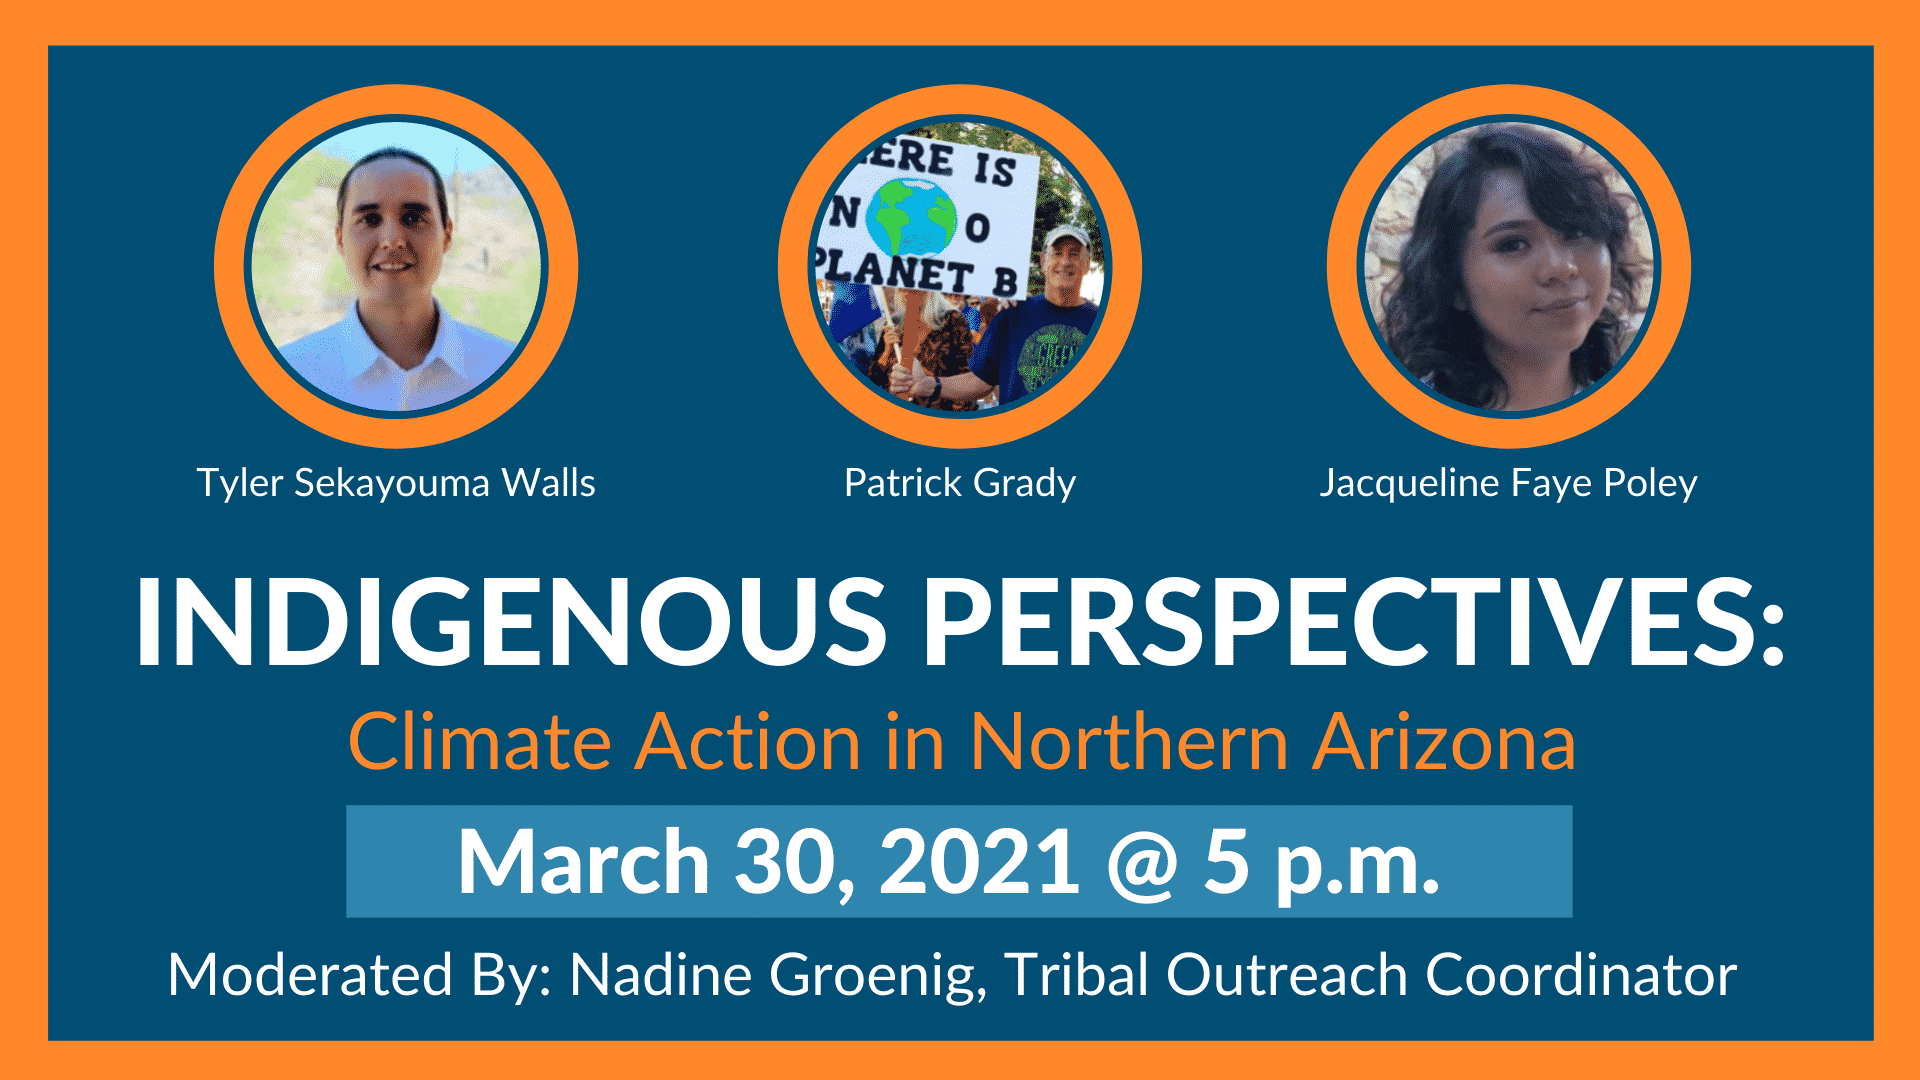 INDIGENOUS PERSPECTIVES: Climate change in Northern Arizona, March 30th, 2021 @5:00pm